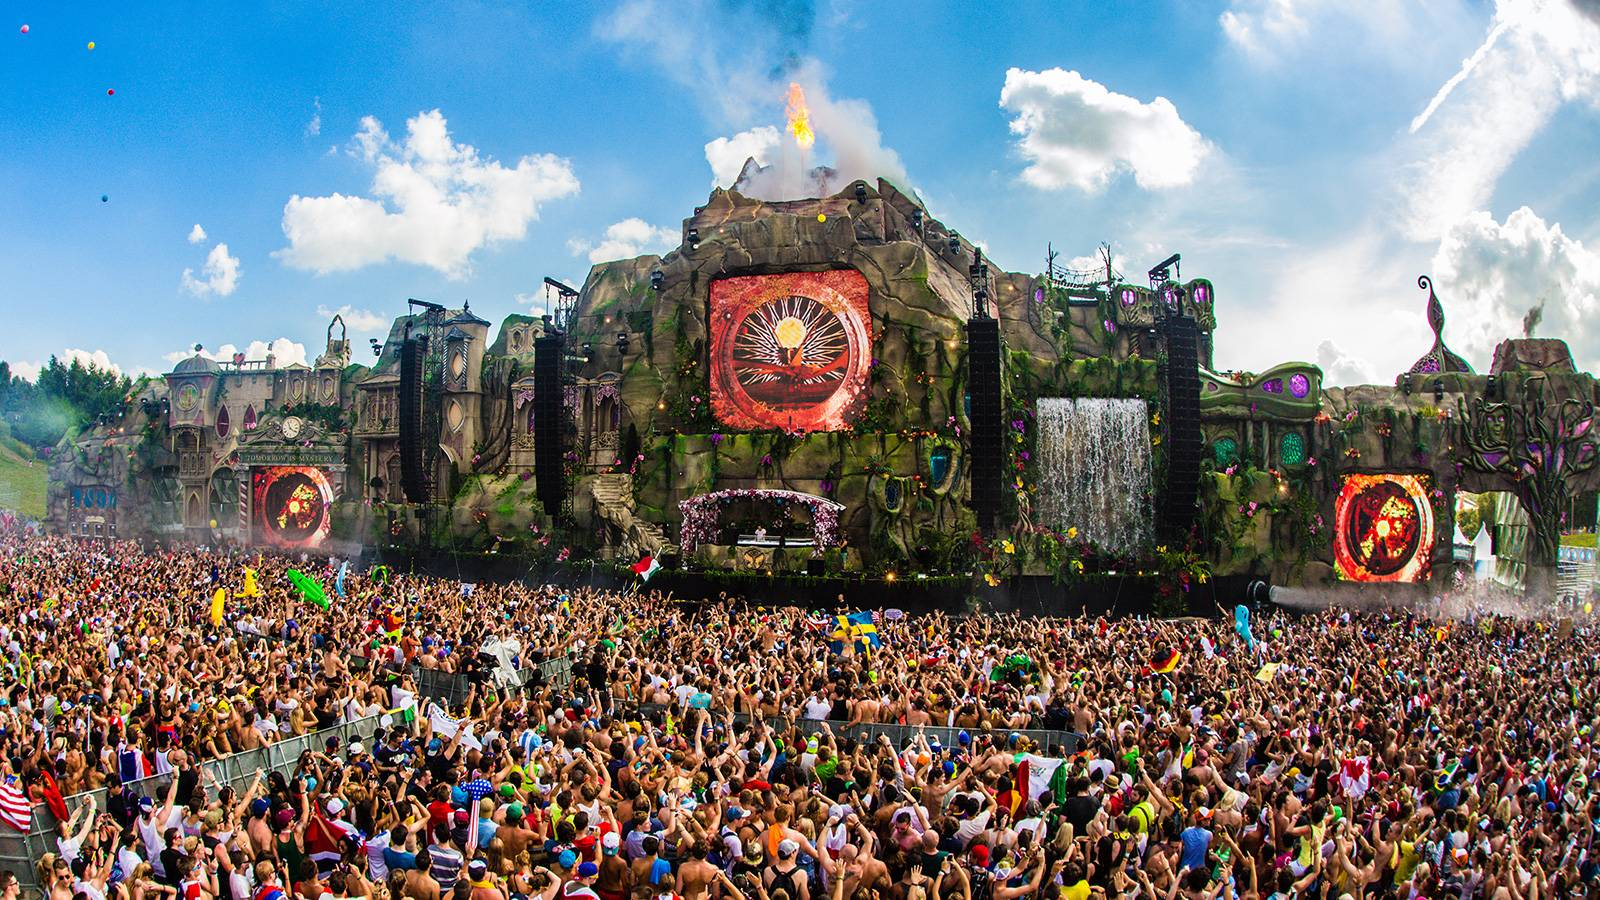 Tomorrowland 2015 Laser Show Hd Wallpapers Wallpaper Cave